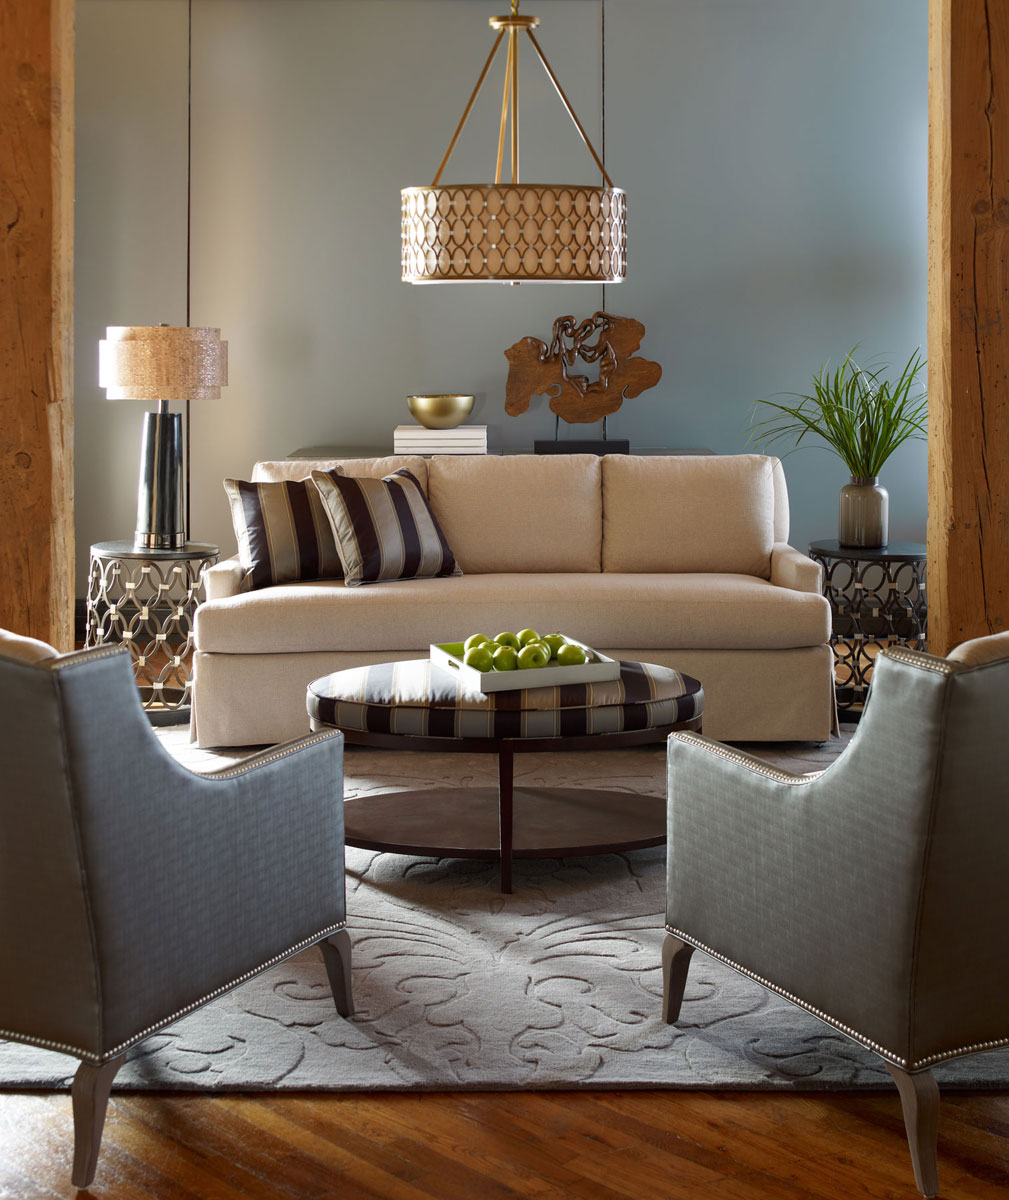 2013 Candice Olson's Living Room Furniture Collection ~ Luxury ...